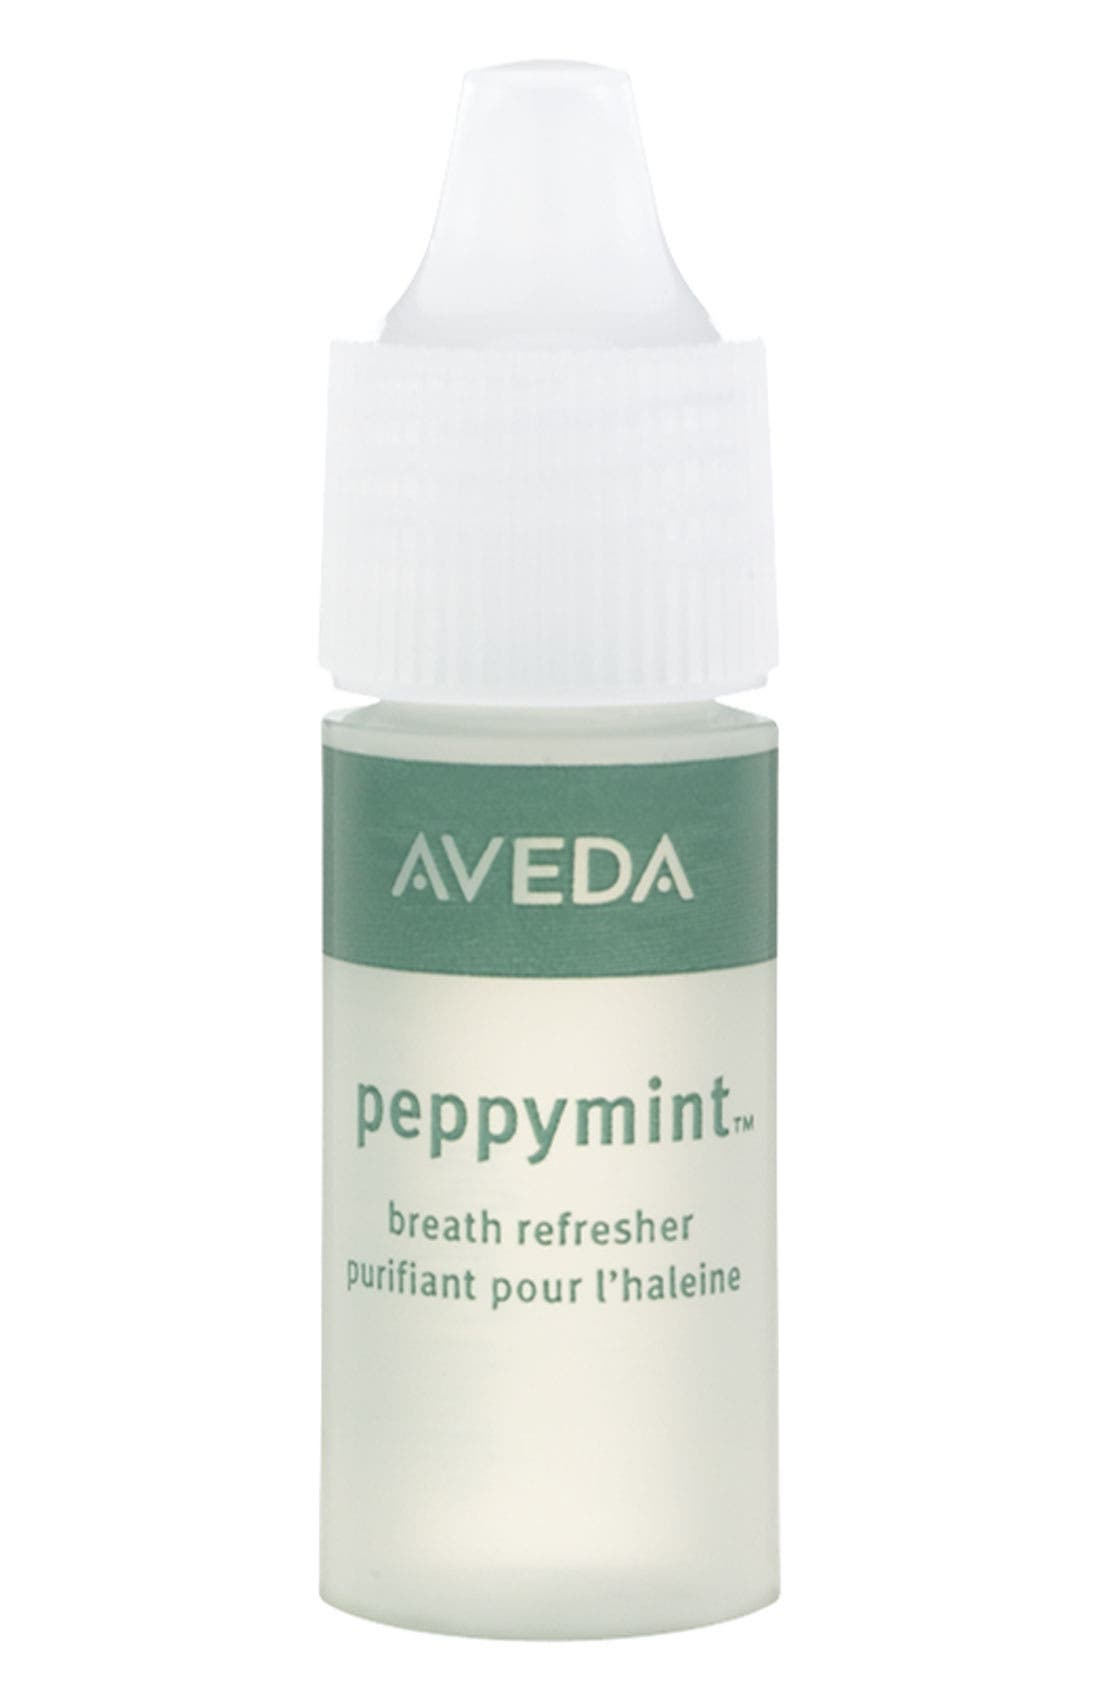 peppymint<sup>™</sup> Breath Refresher,                             Main thumbnail 1, color,                             000